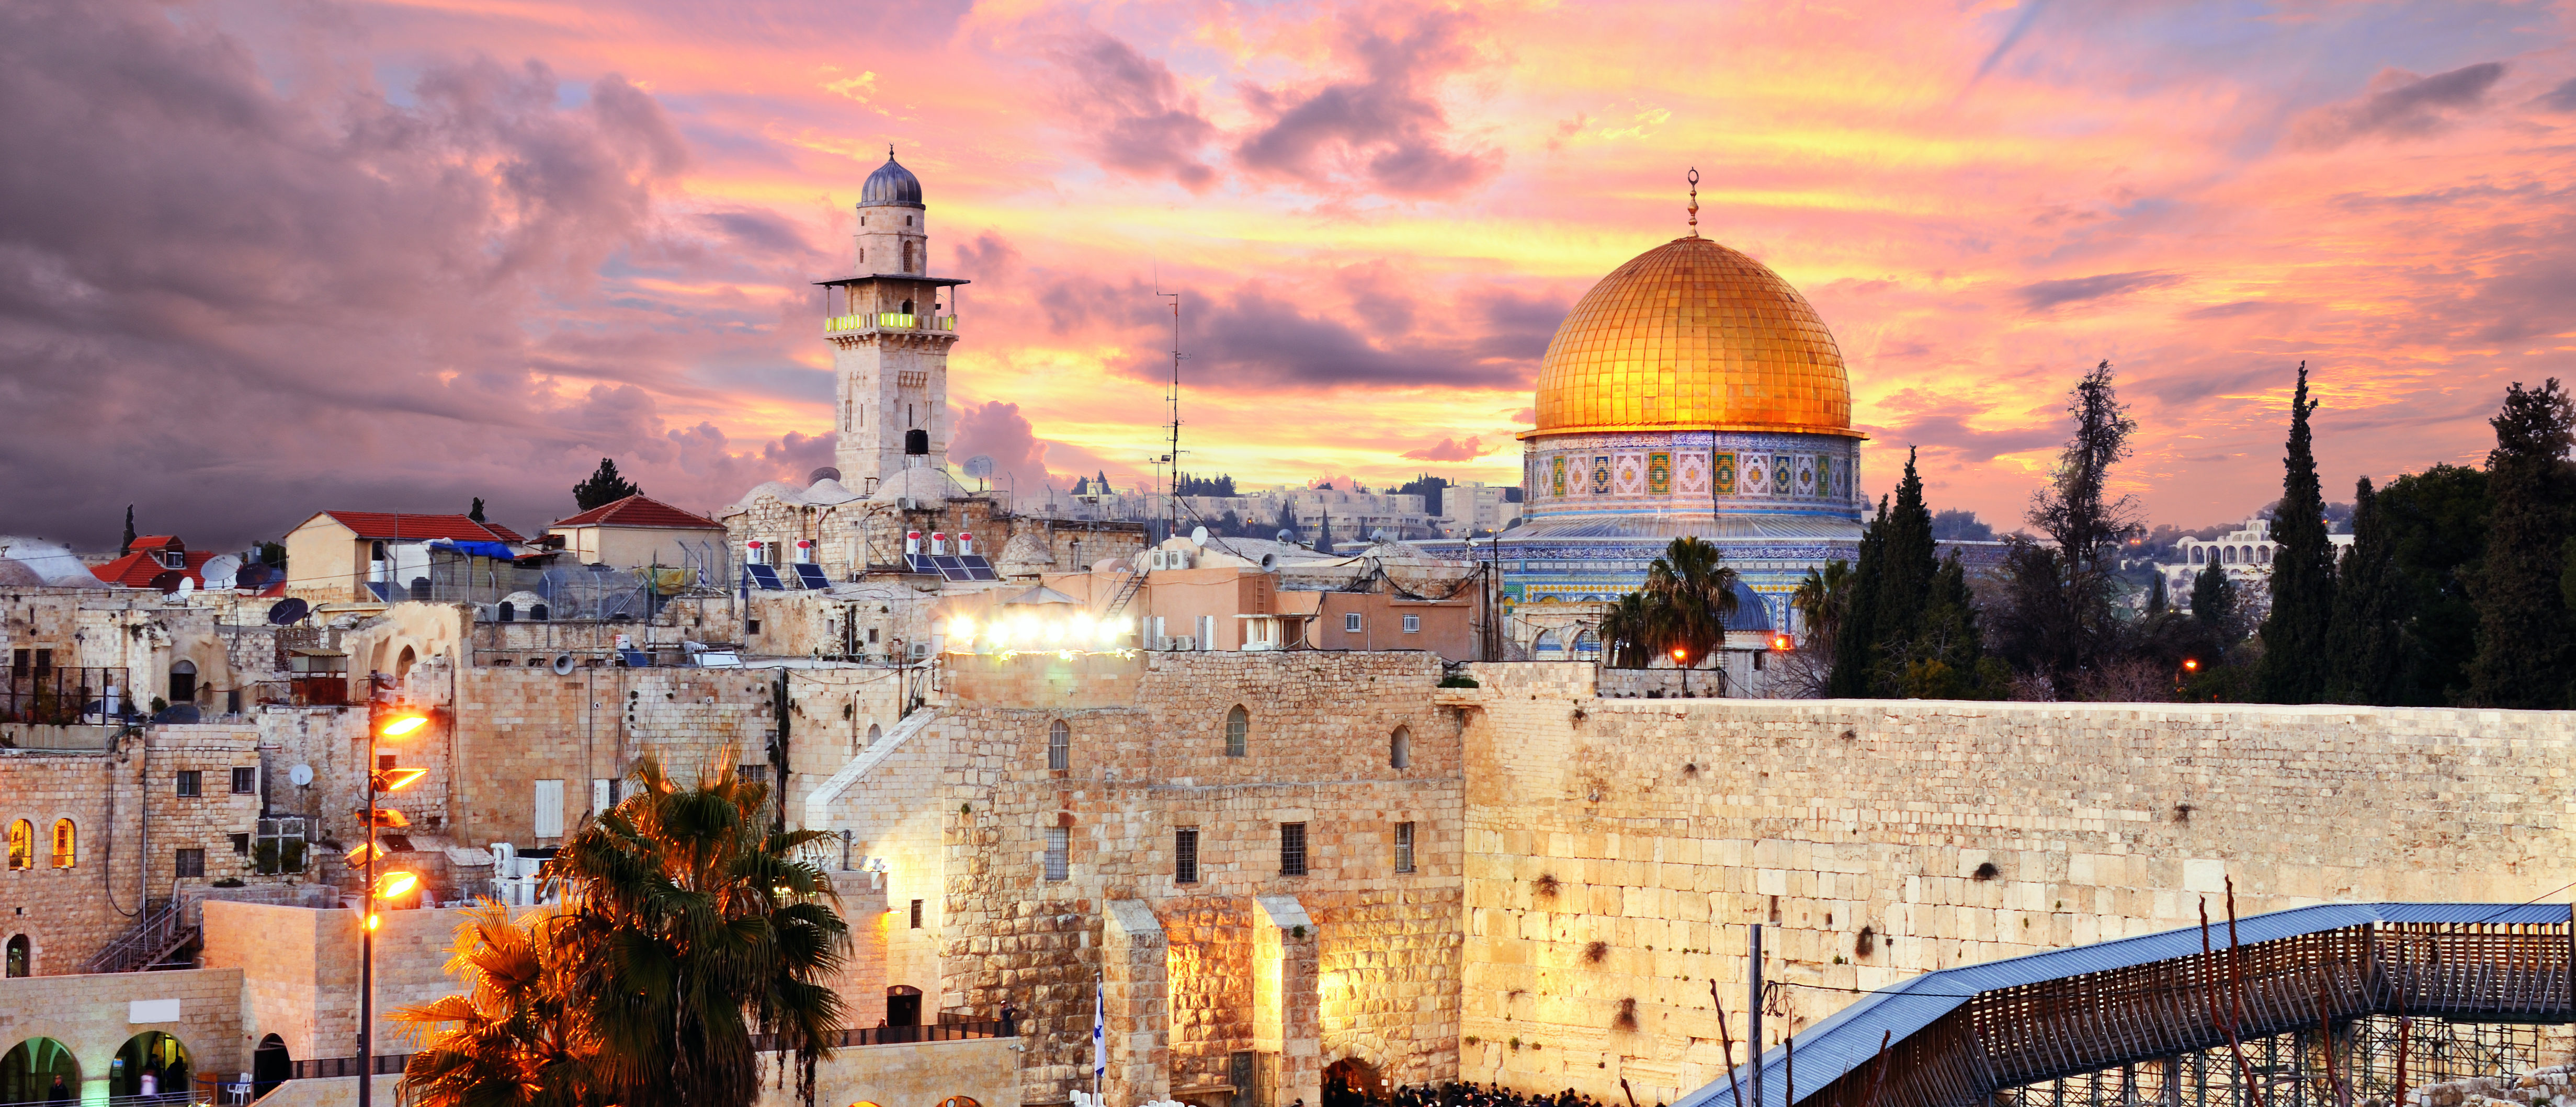 The old city of Jerusalem at twilight. (Shutterstock)